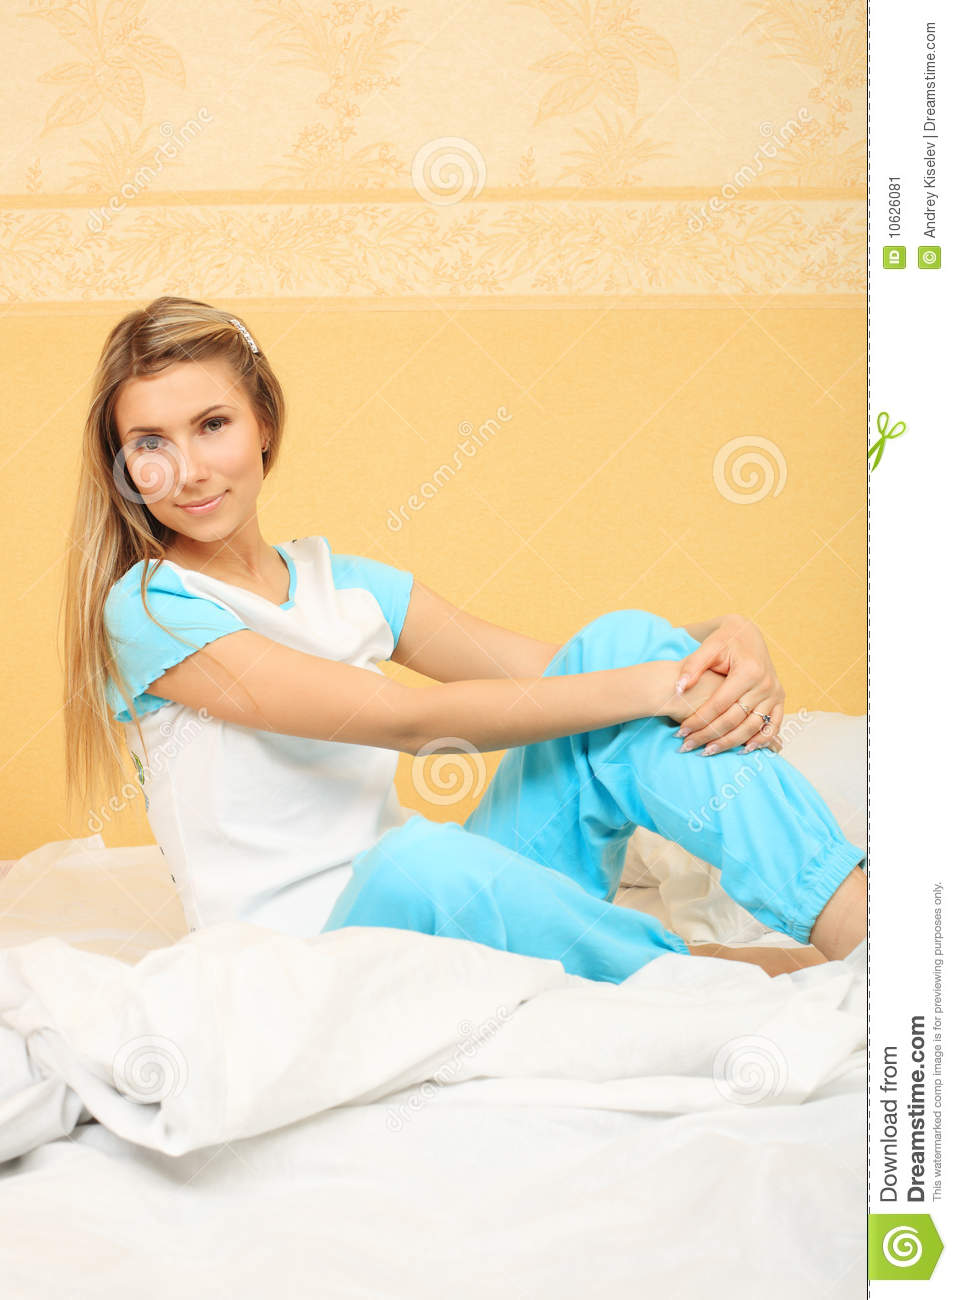 Sitting on a bed